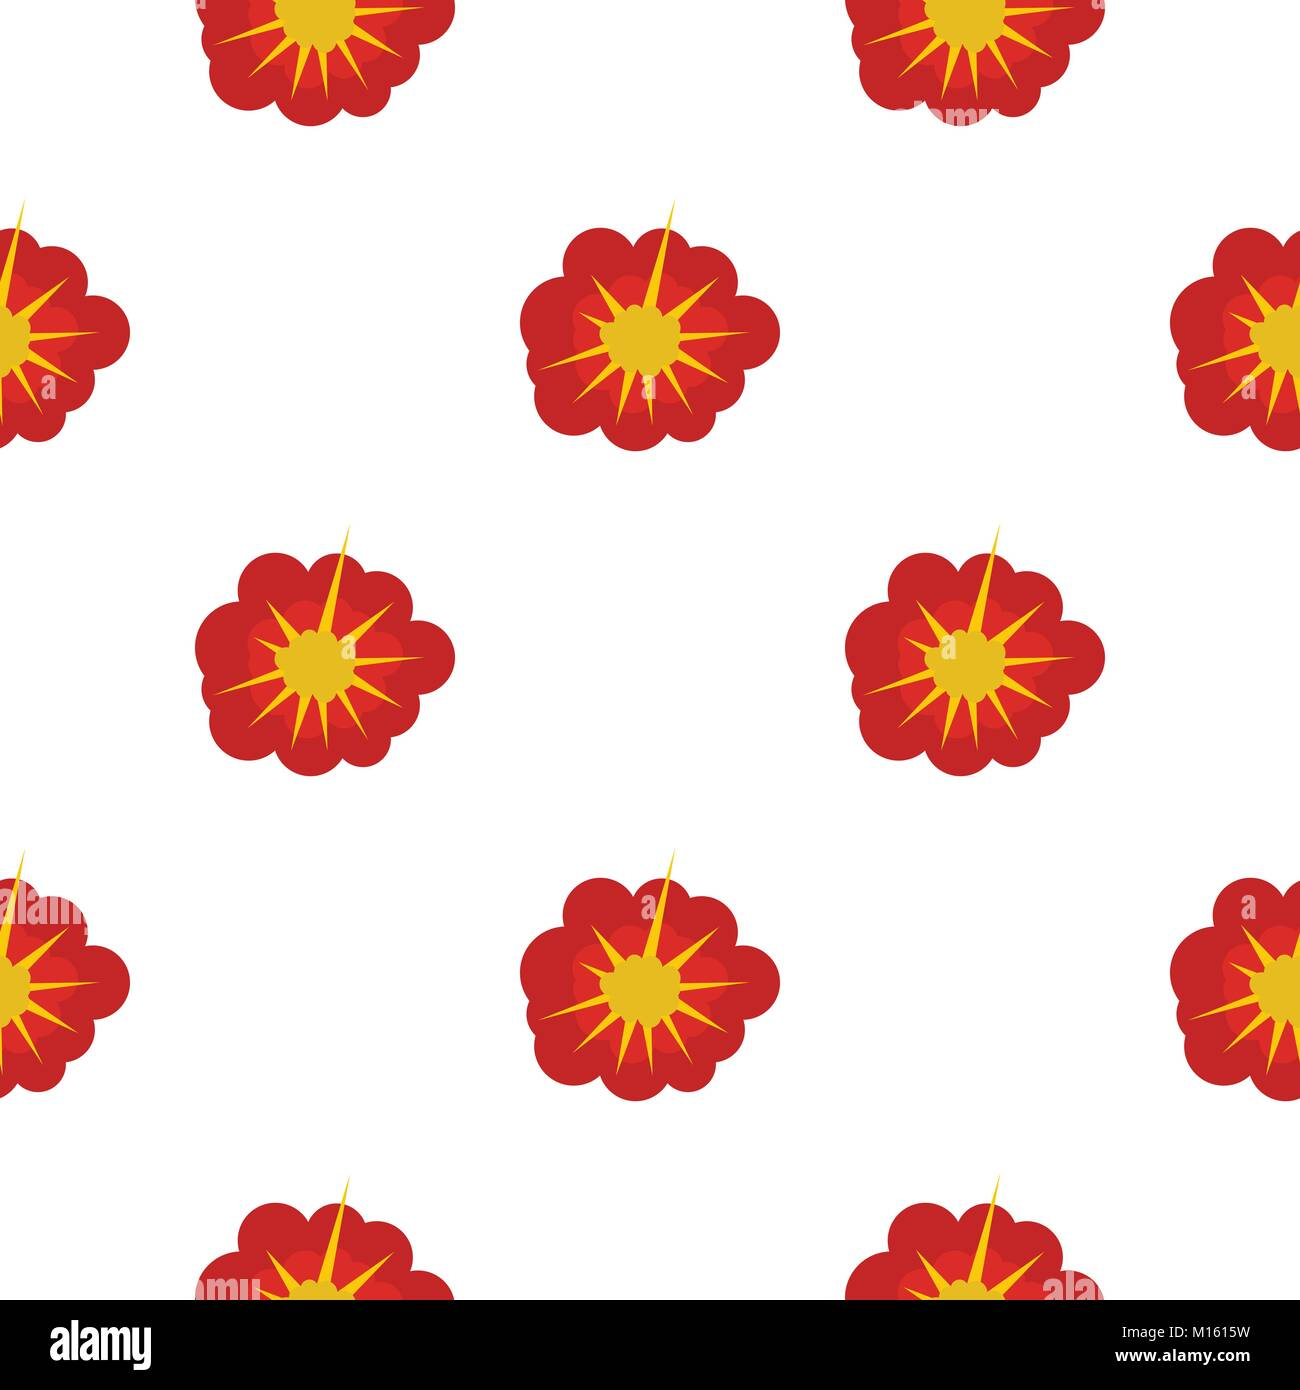 Cloudy explosion pattern seamless - Stock Image